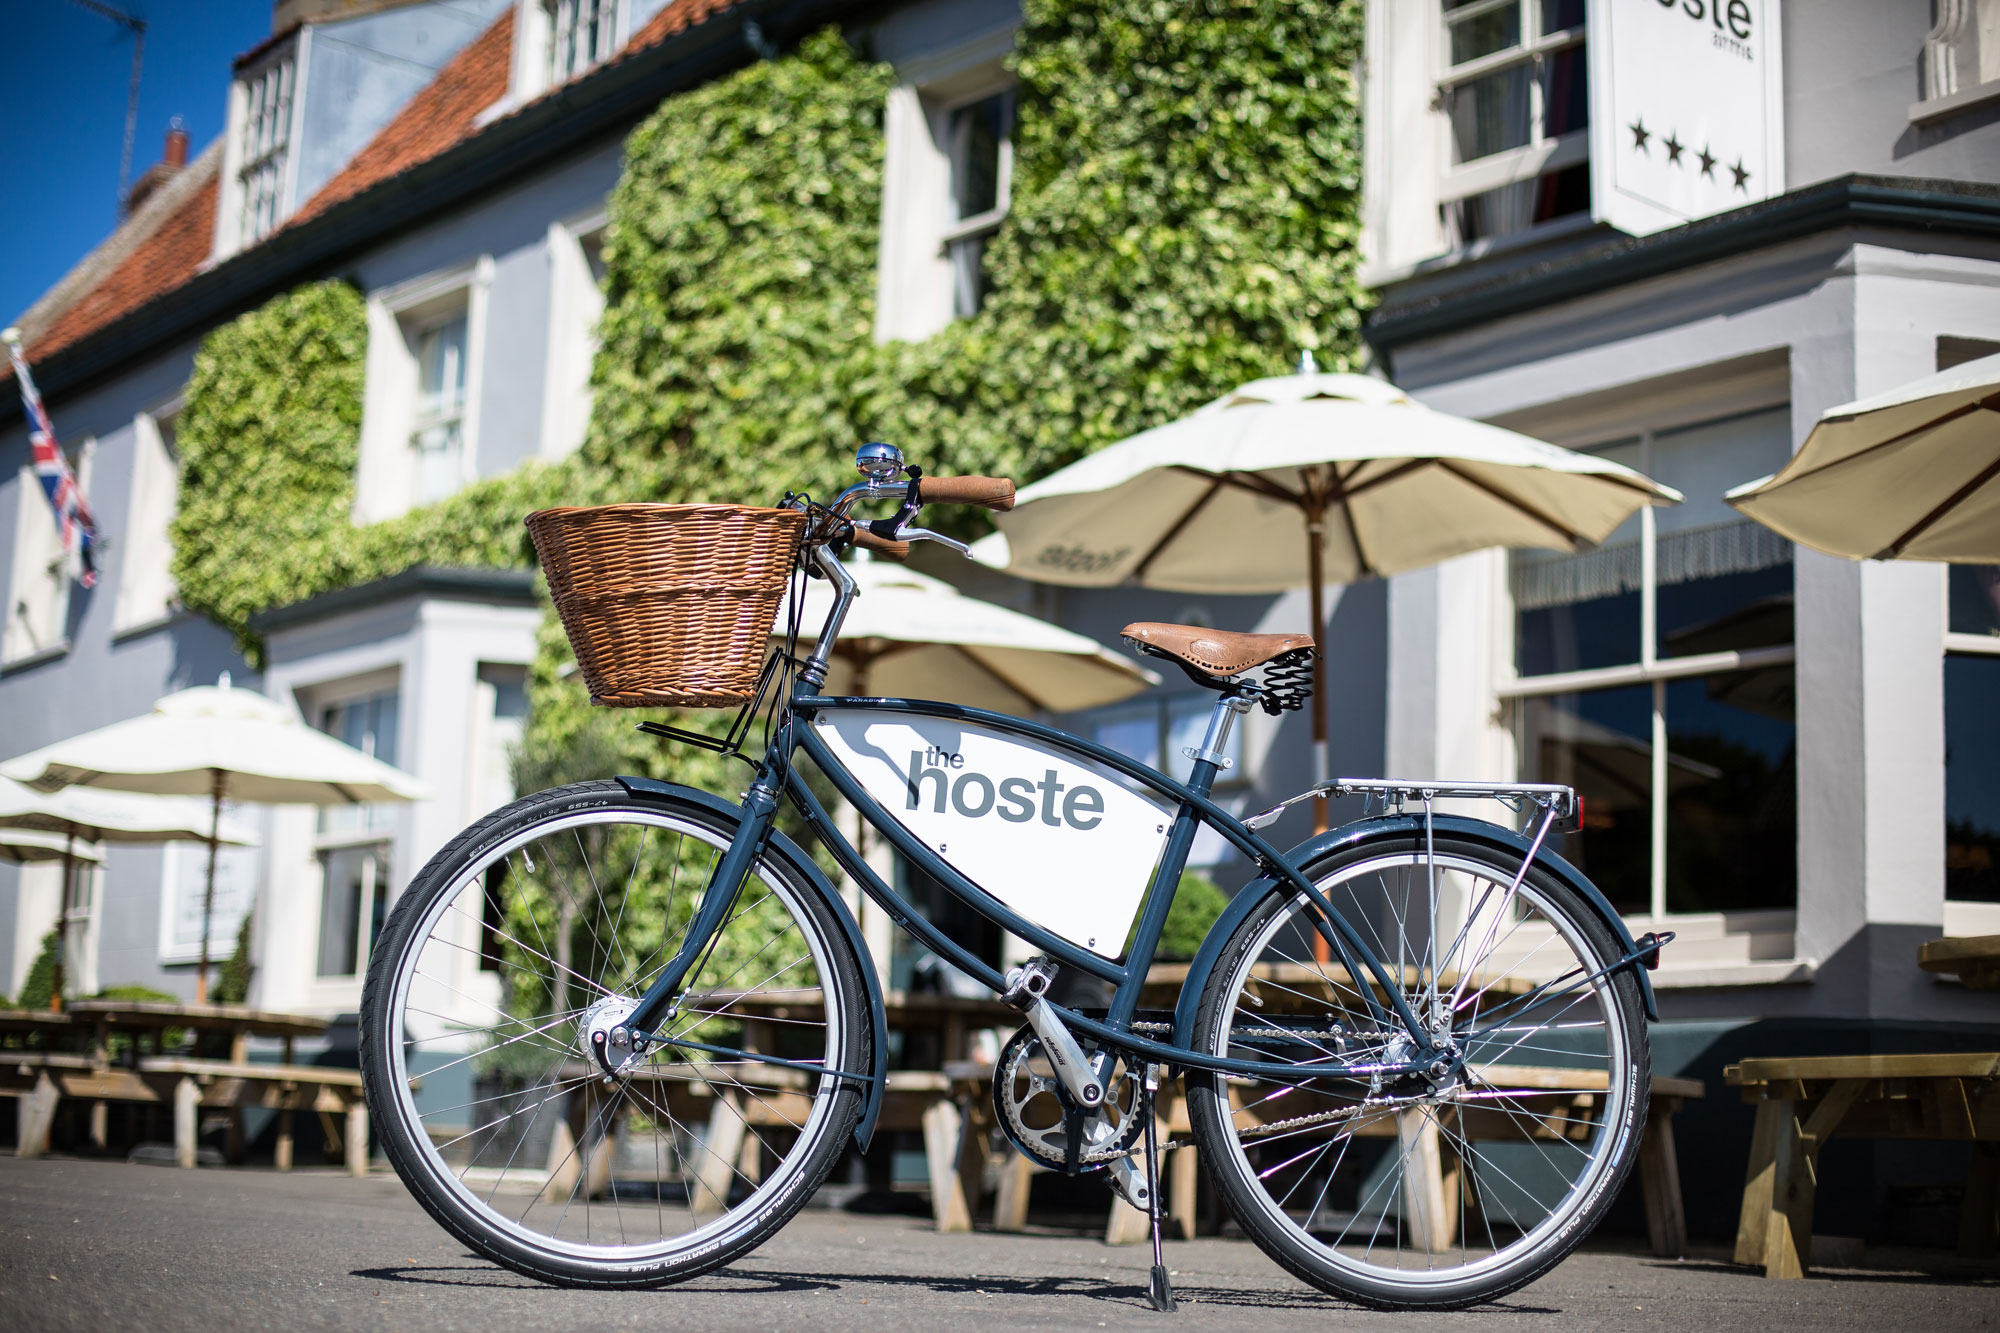 The village of Burnham Market in Norfolk is home to a very good 'Hoste'